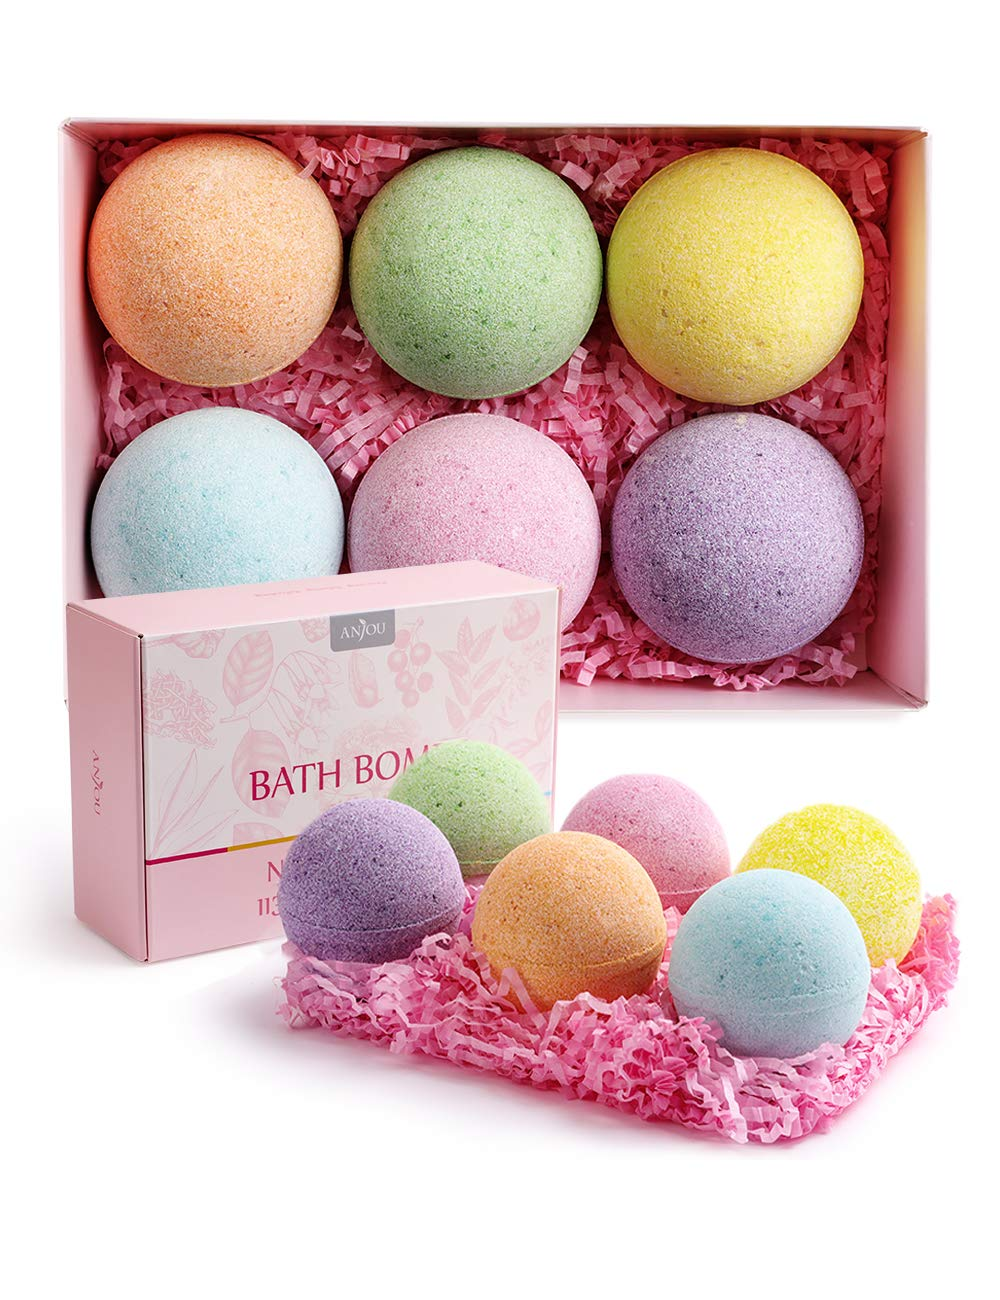 These Aromatherapy Bath Bombs Are so Relaxing You Might Just Skip Your Evening Glass of Wine | STYLECASTER